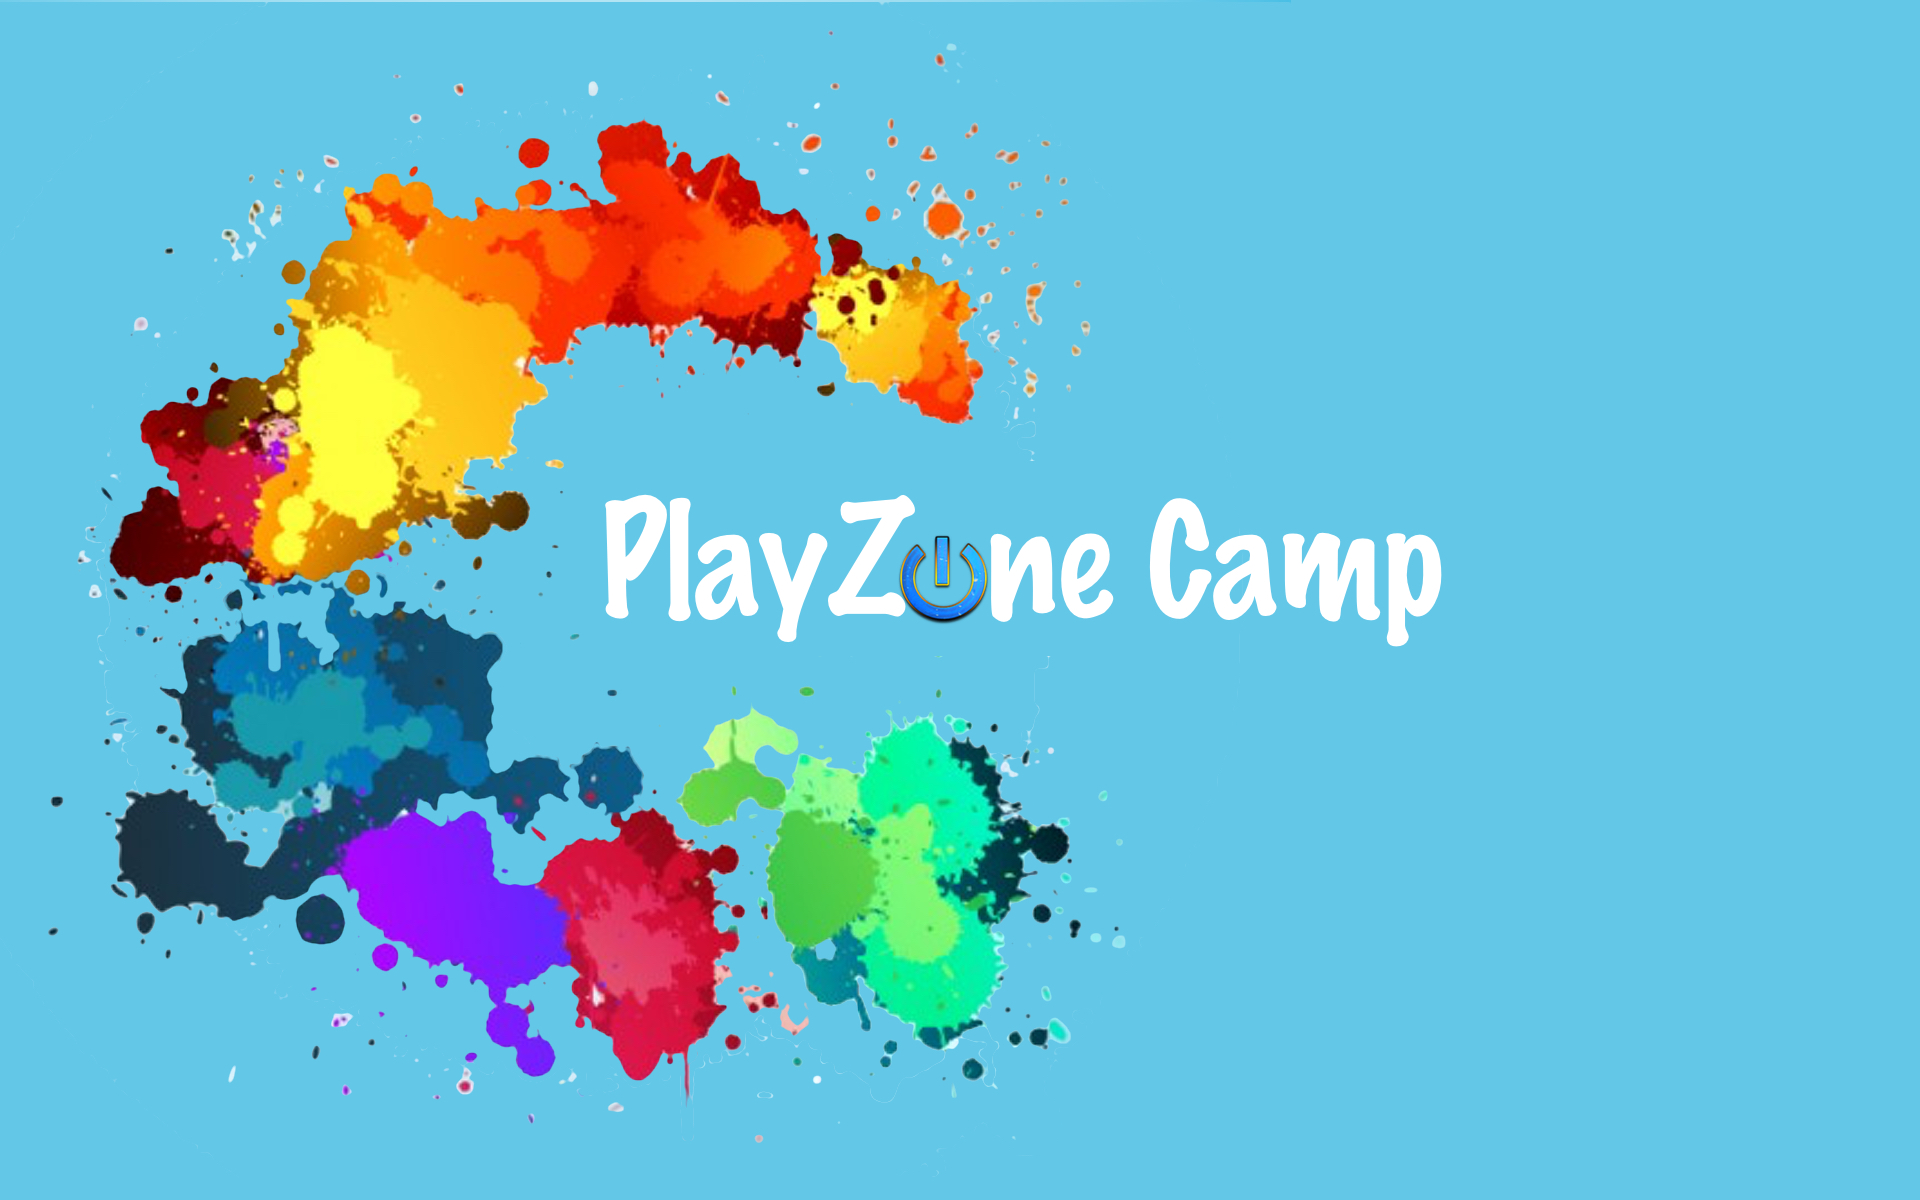 PlayZone-Camp-Portada